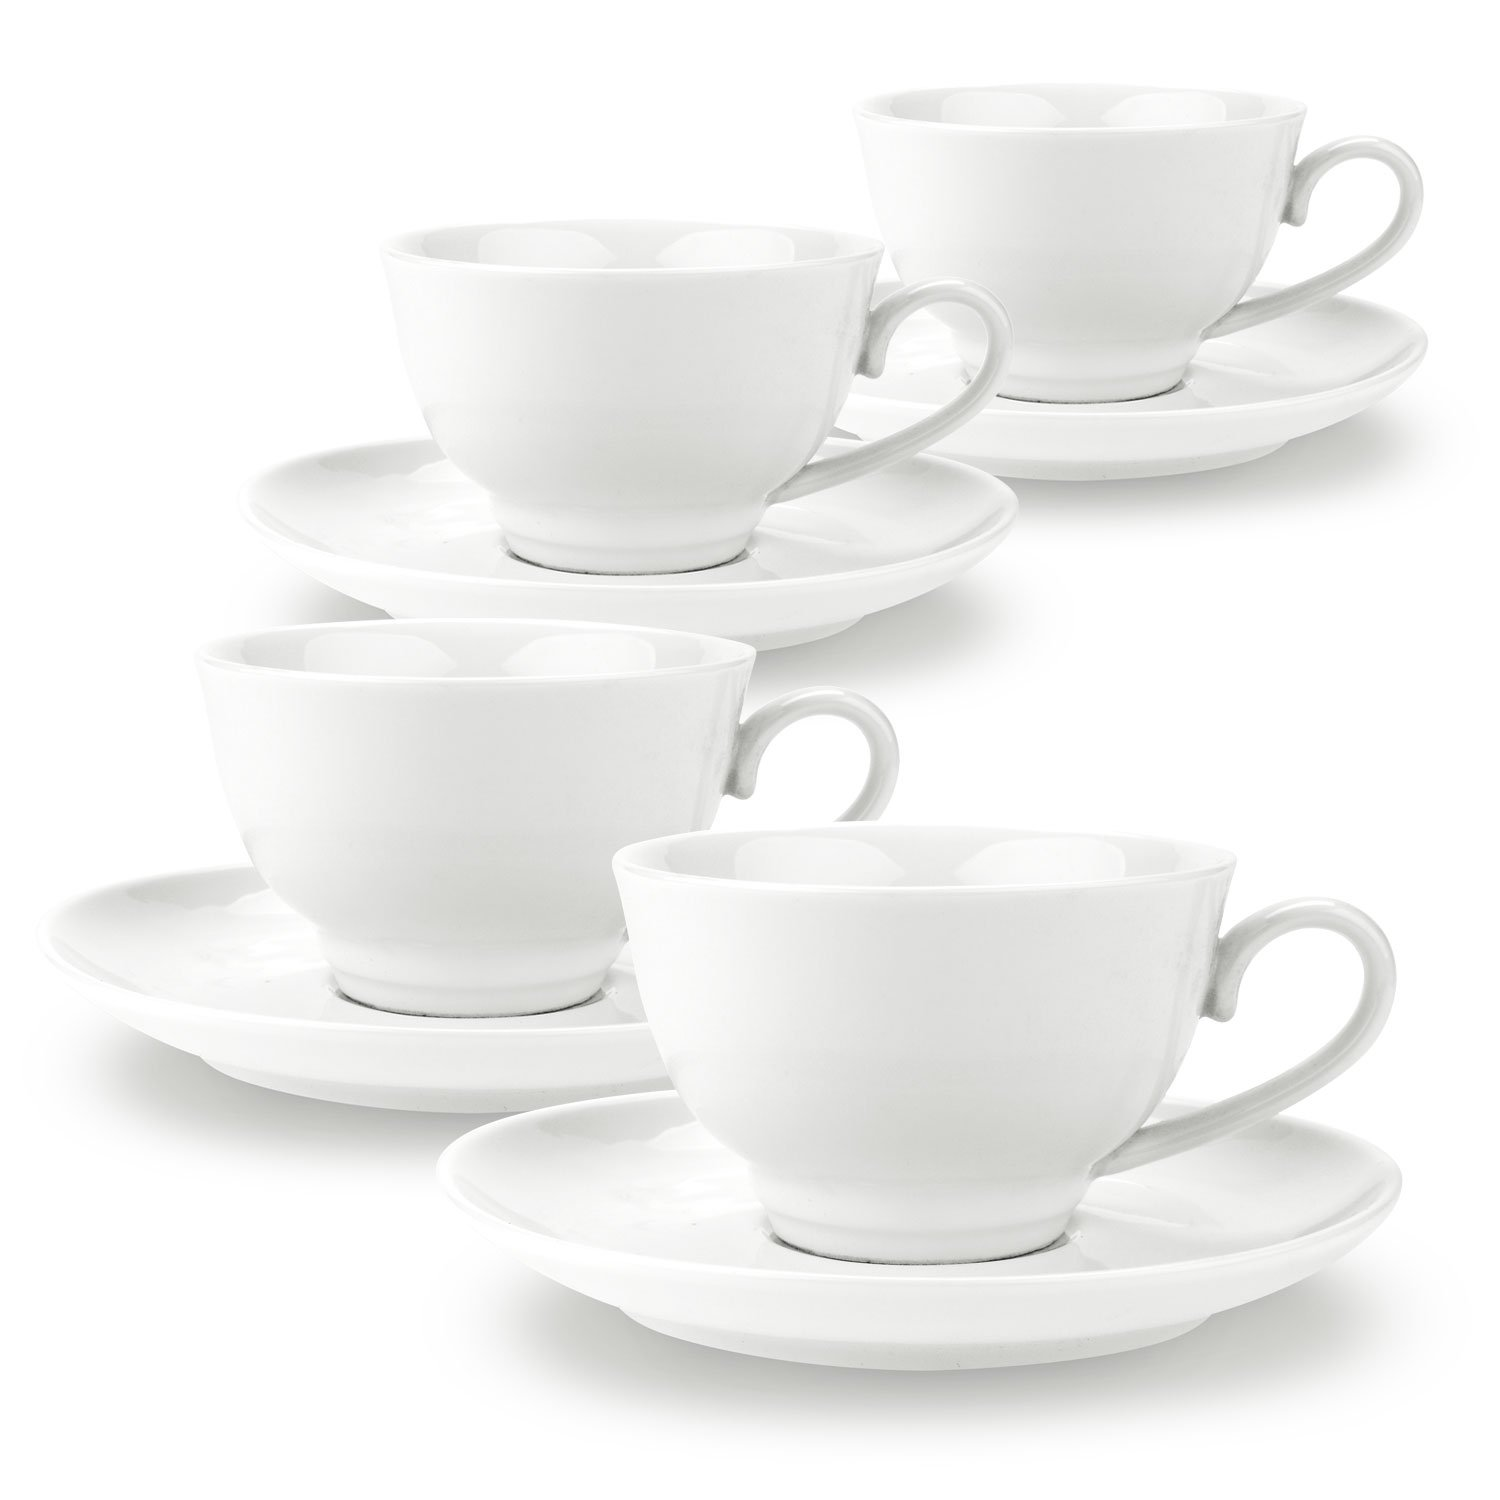 150ml China Porcelain Tea Cup and Saucer Set Coffee Cup Set with Saucer White Magnolia sets of 4